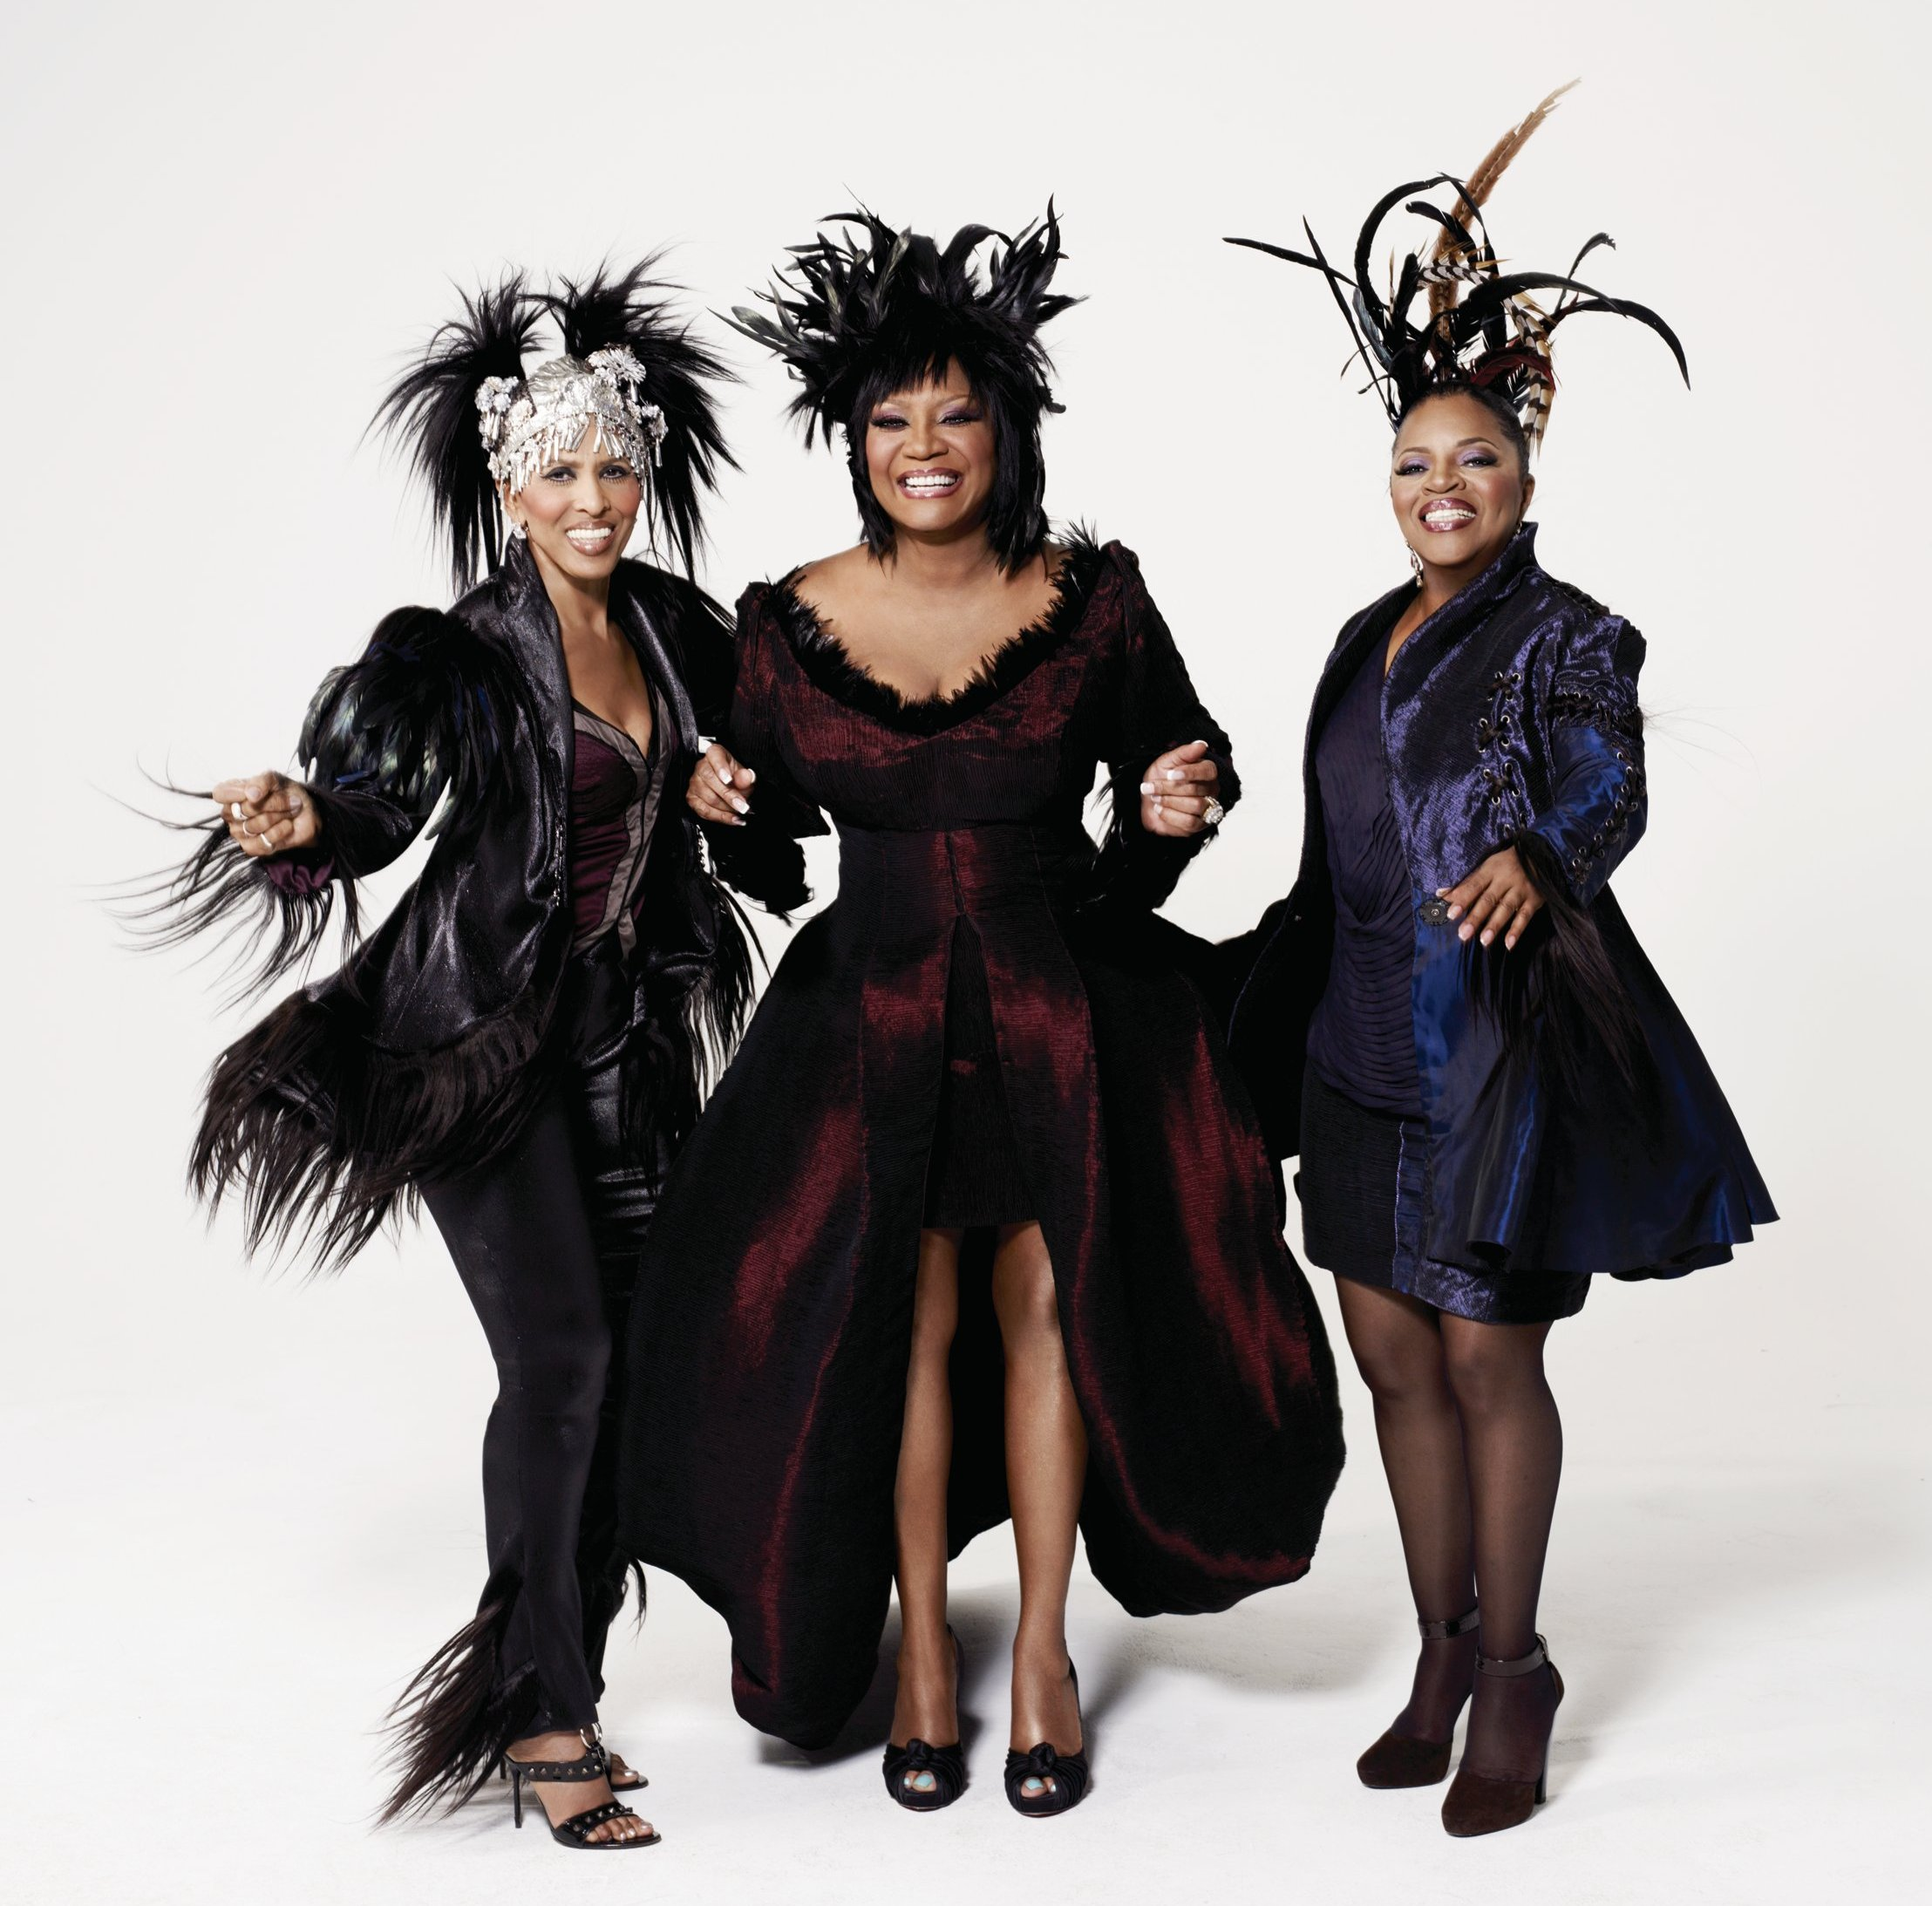 Nona Hendryx Patti LaBelle Sarah Dash of Labelle Courtesy of Verve Records